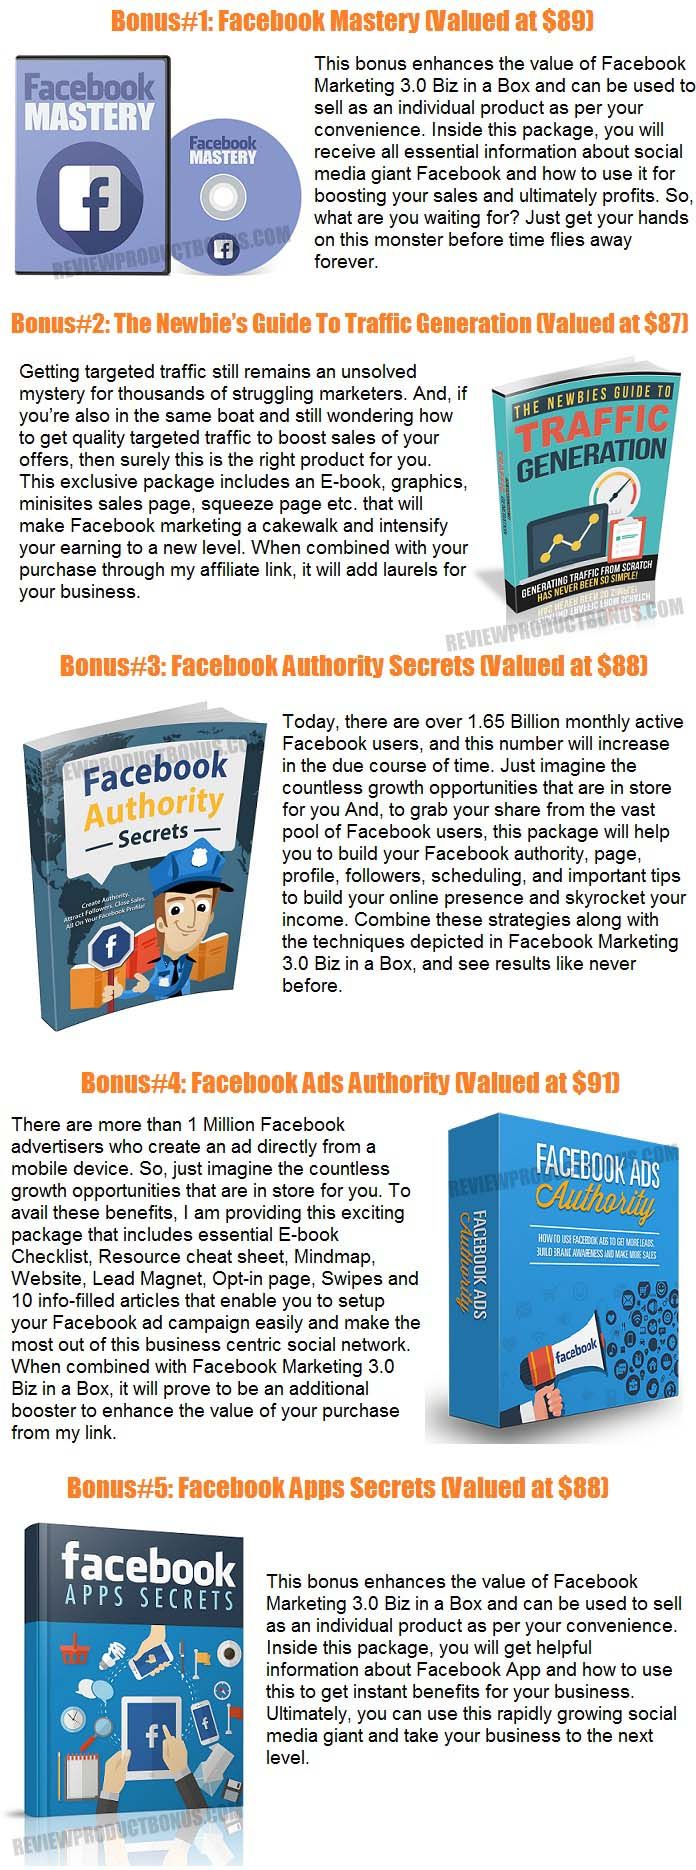 Facebook Marketing 3.0 Bonus